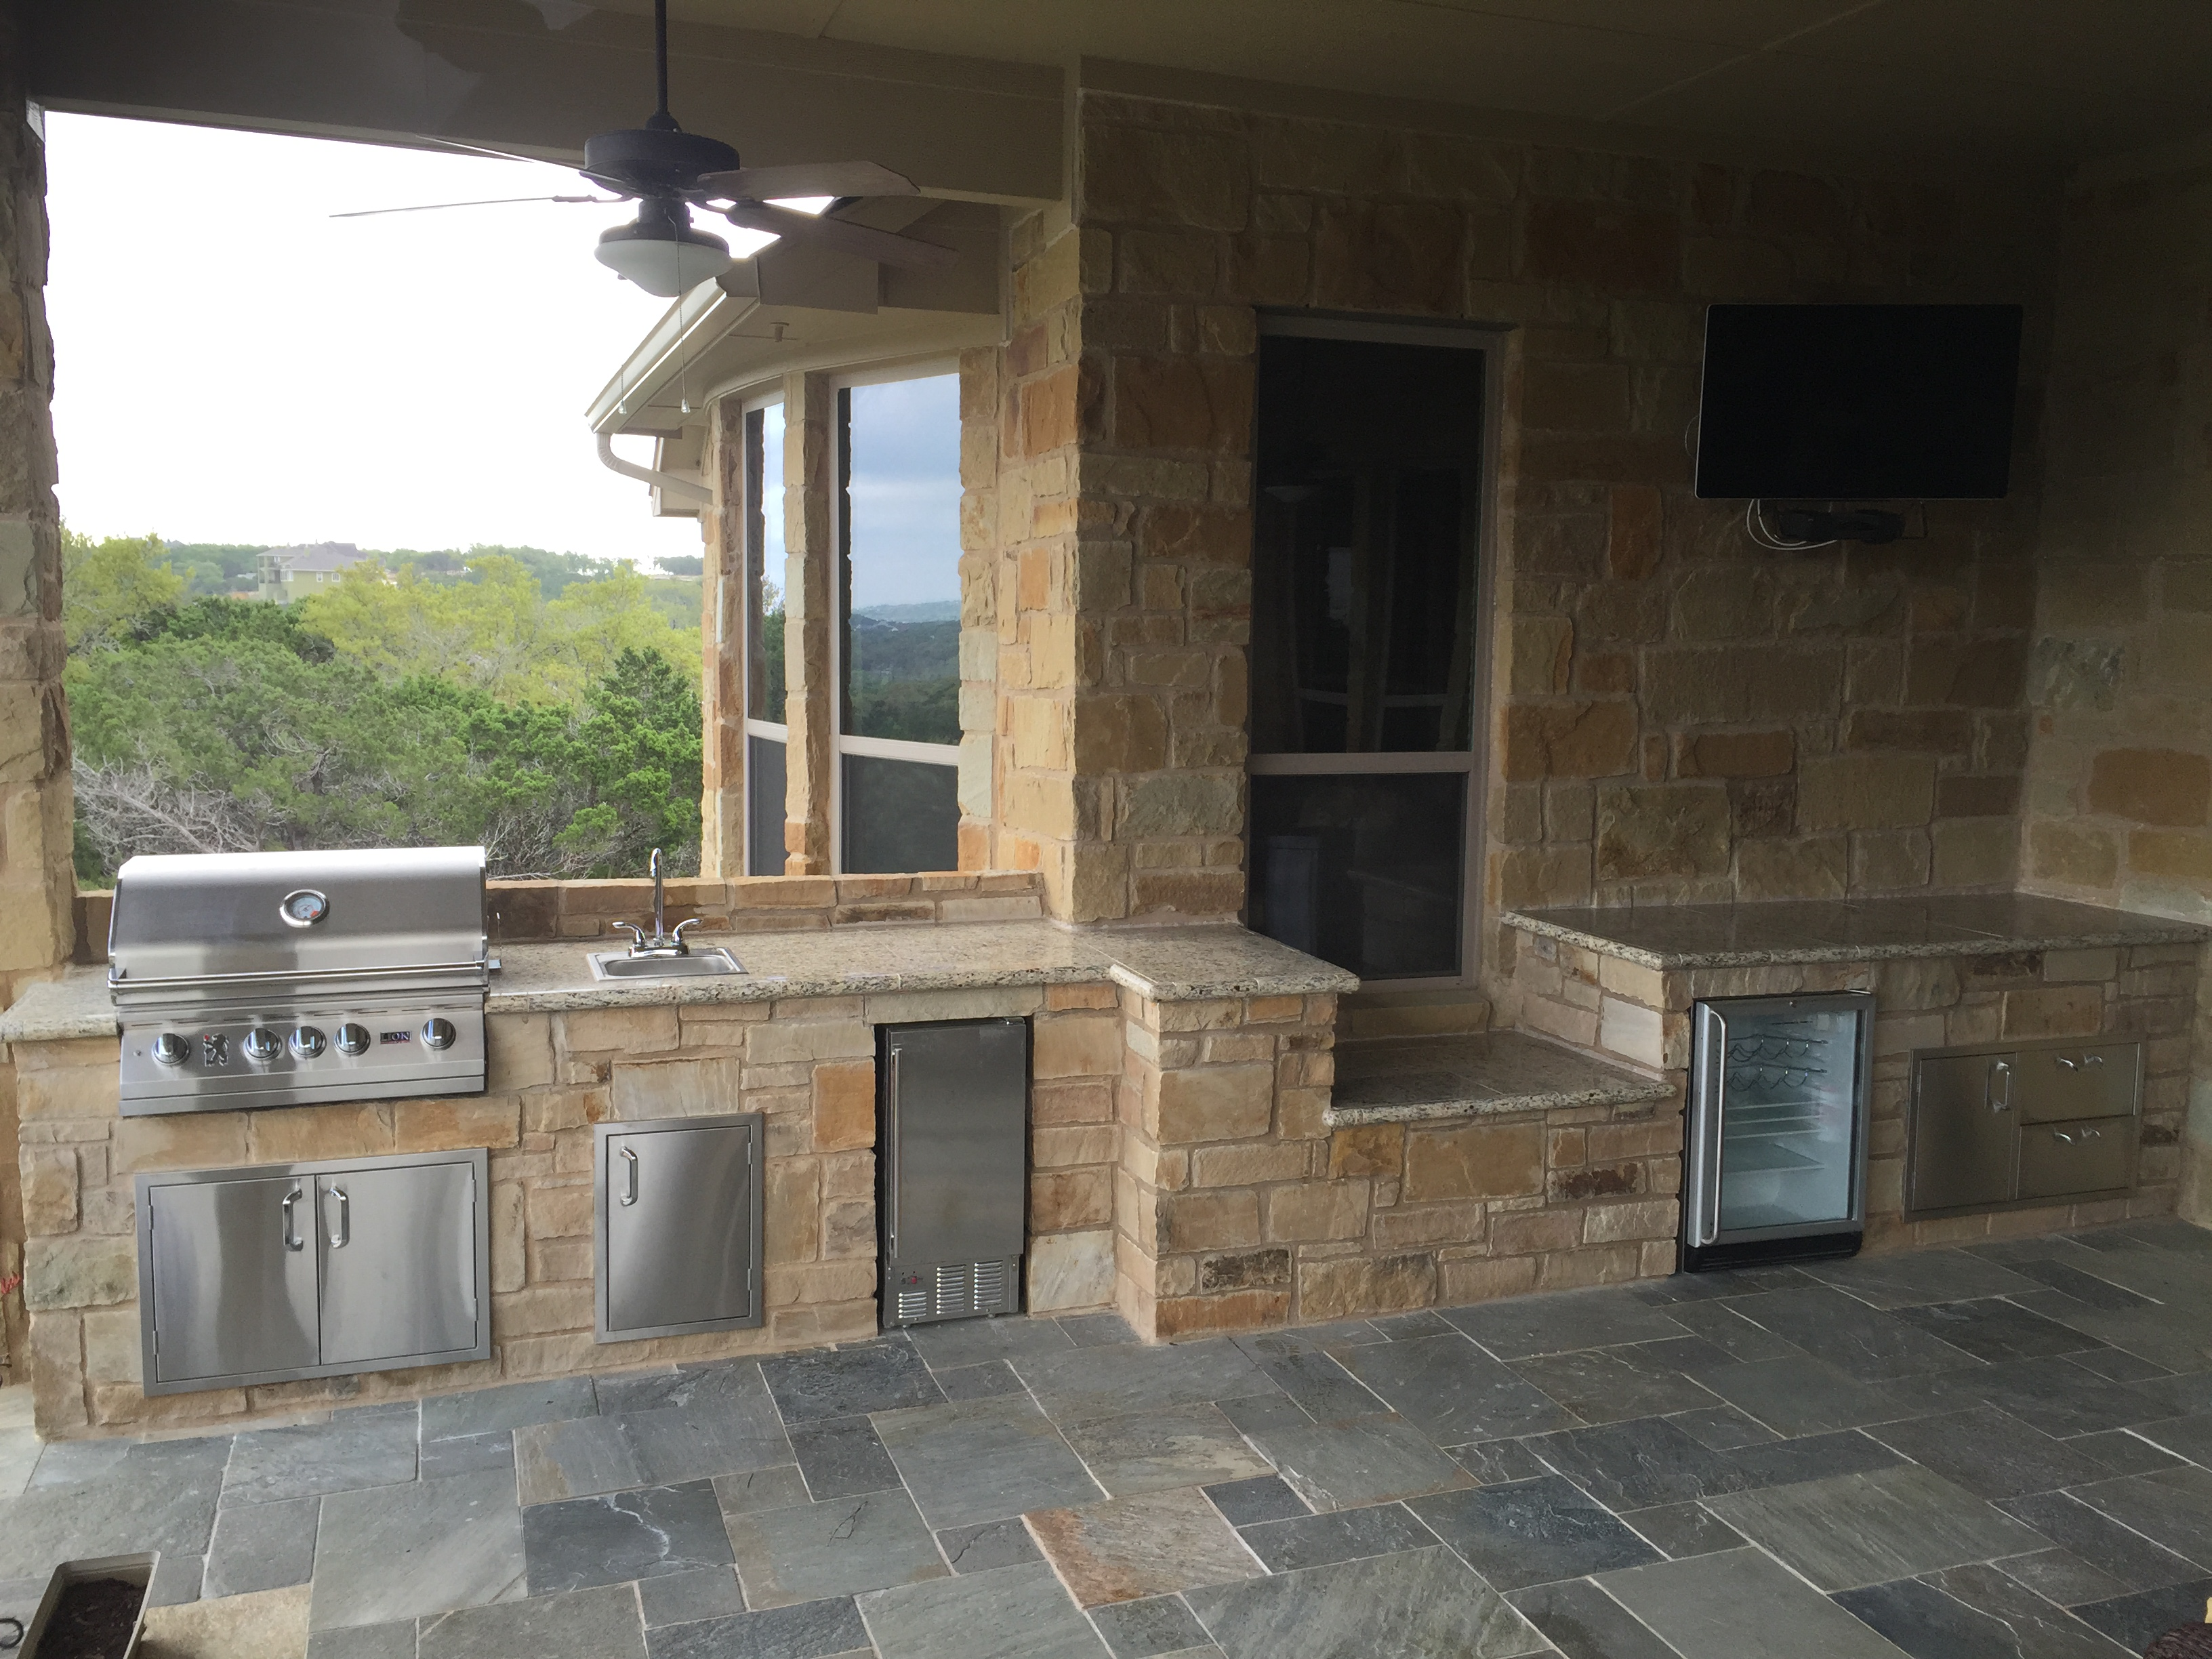 Austin Outdoor Kitchens Limestone Countertops Outdoor Kitchens Cliff Kitchen